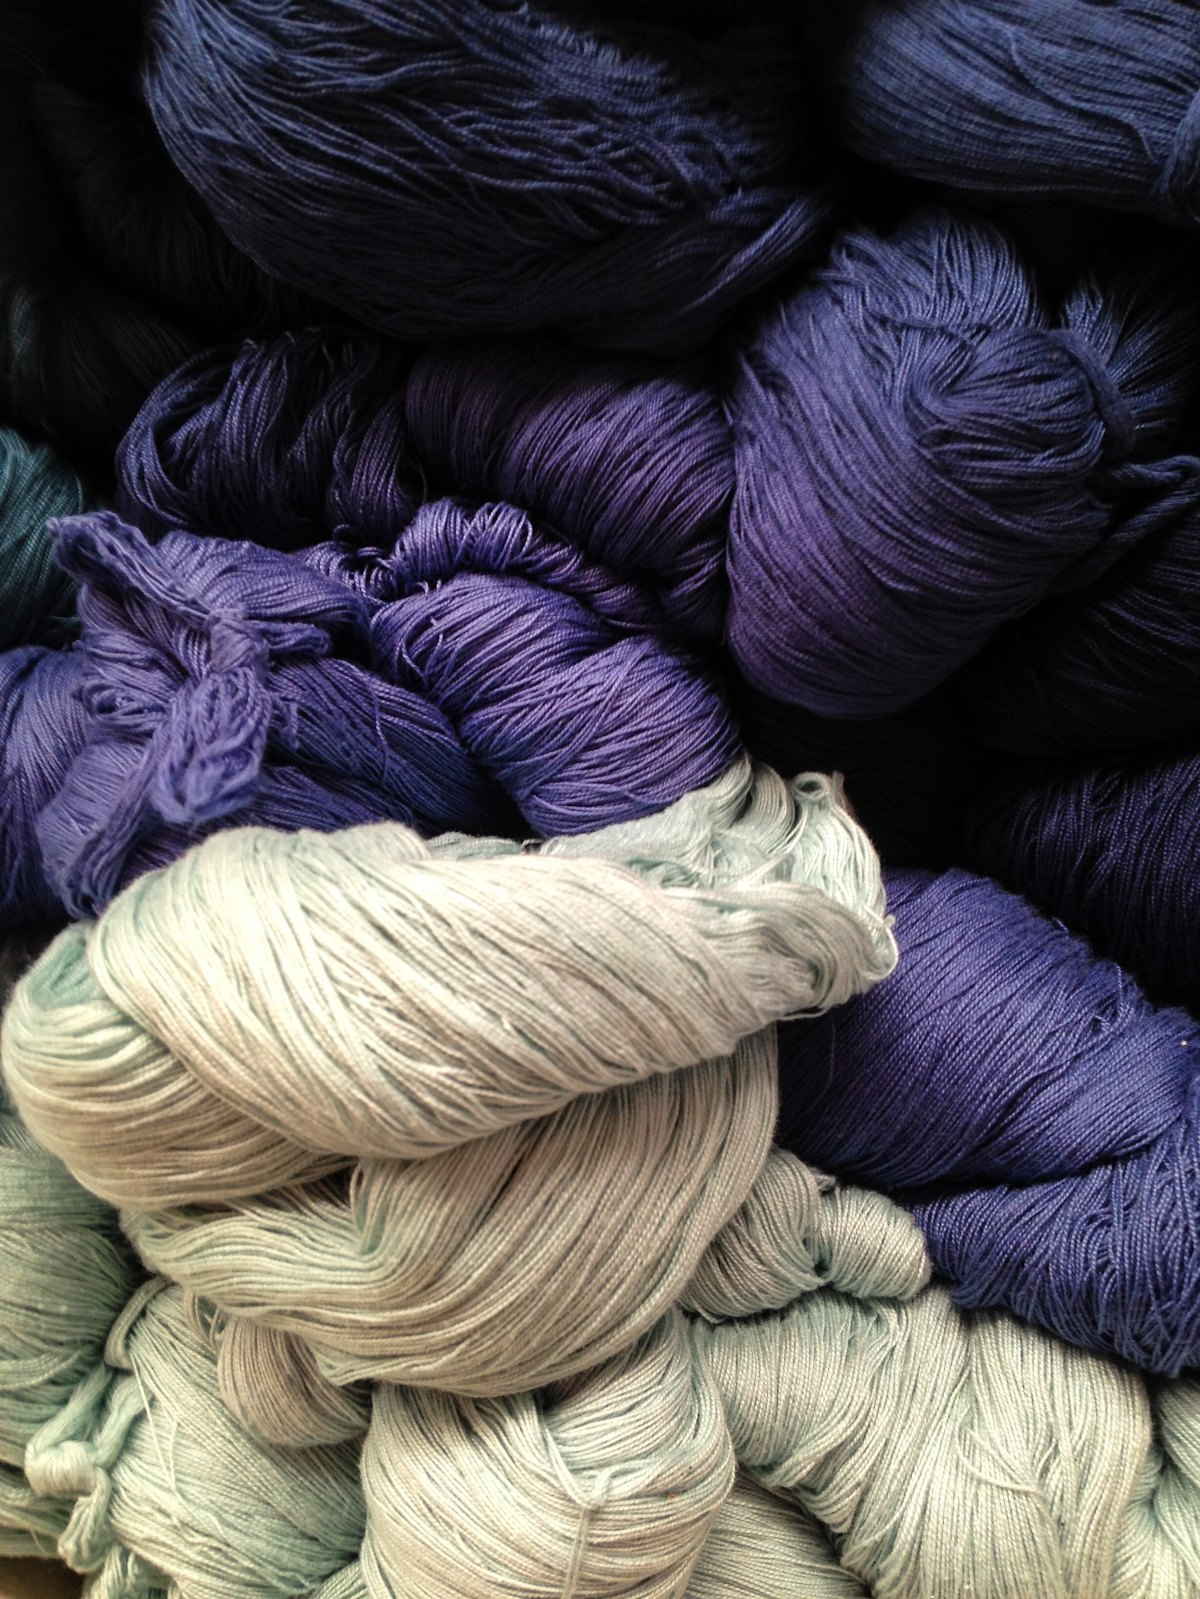 Spring Crafting: Yarn Dyeing